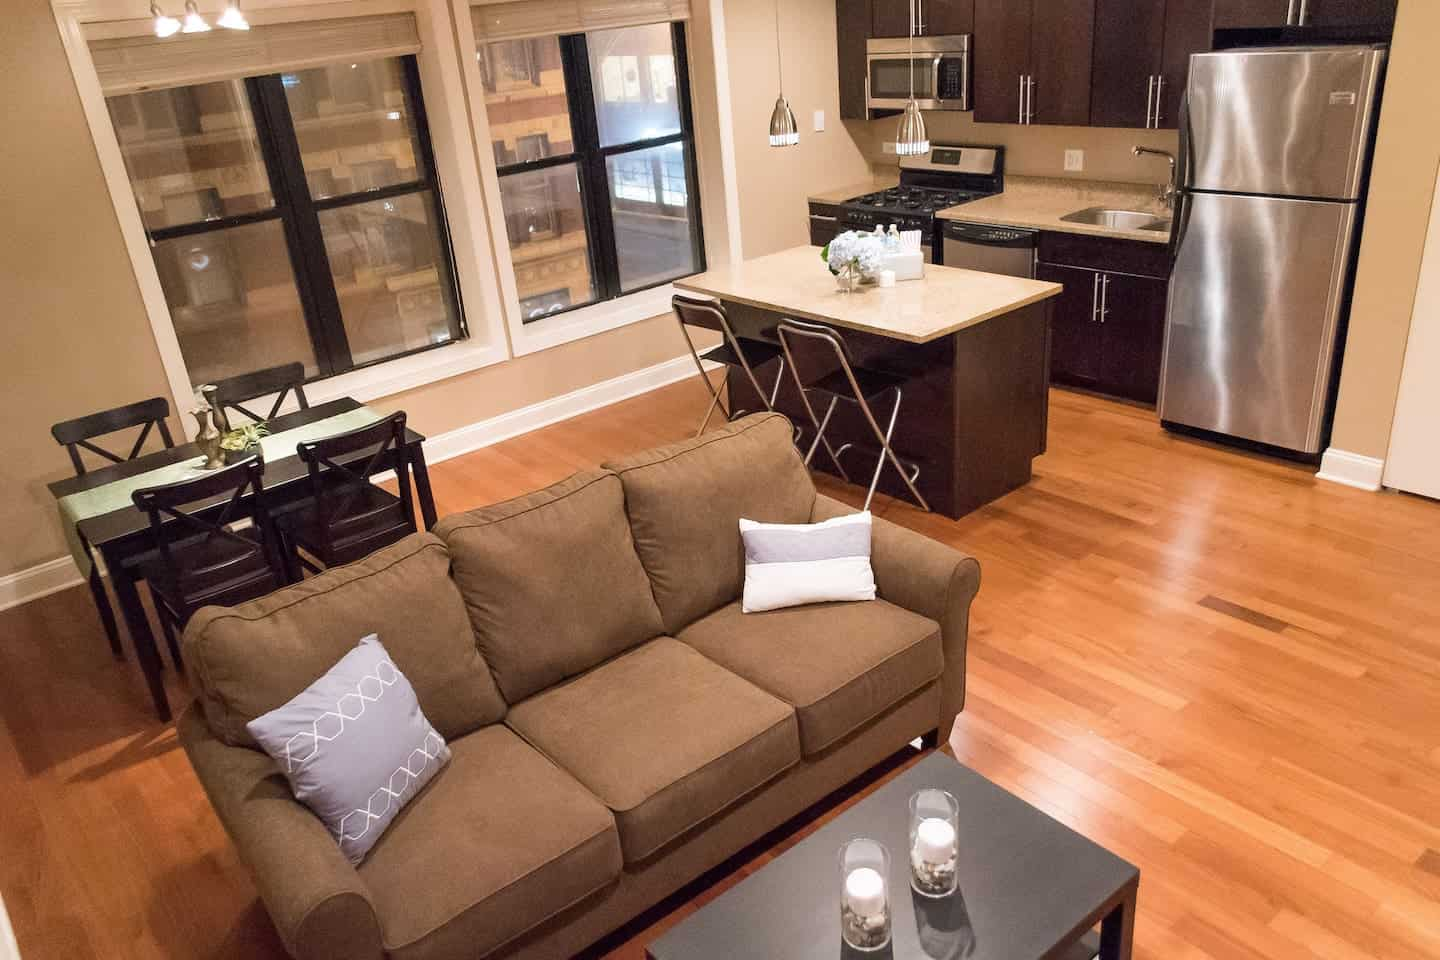 Image of Airbnb rental in Chicago, Illinois